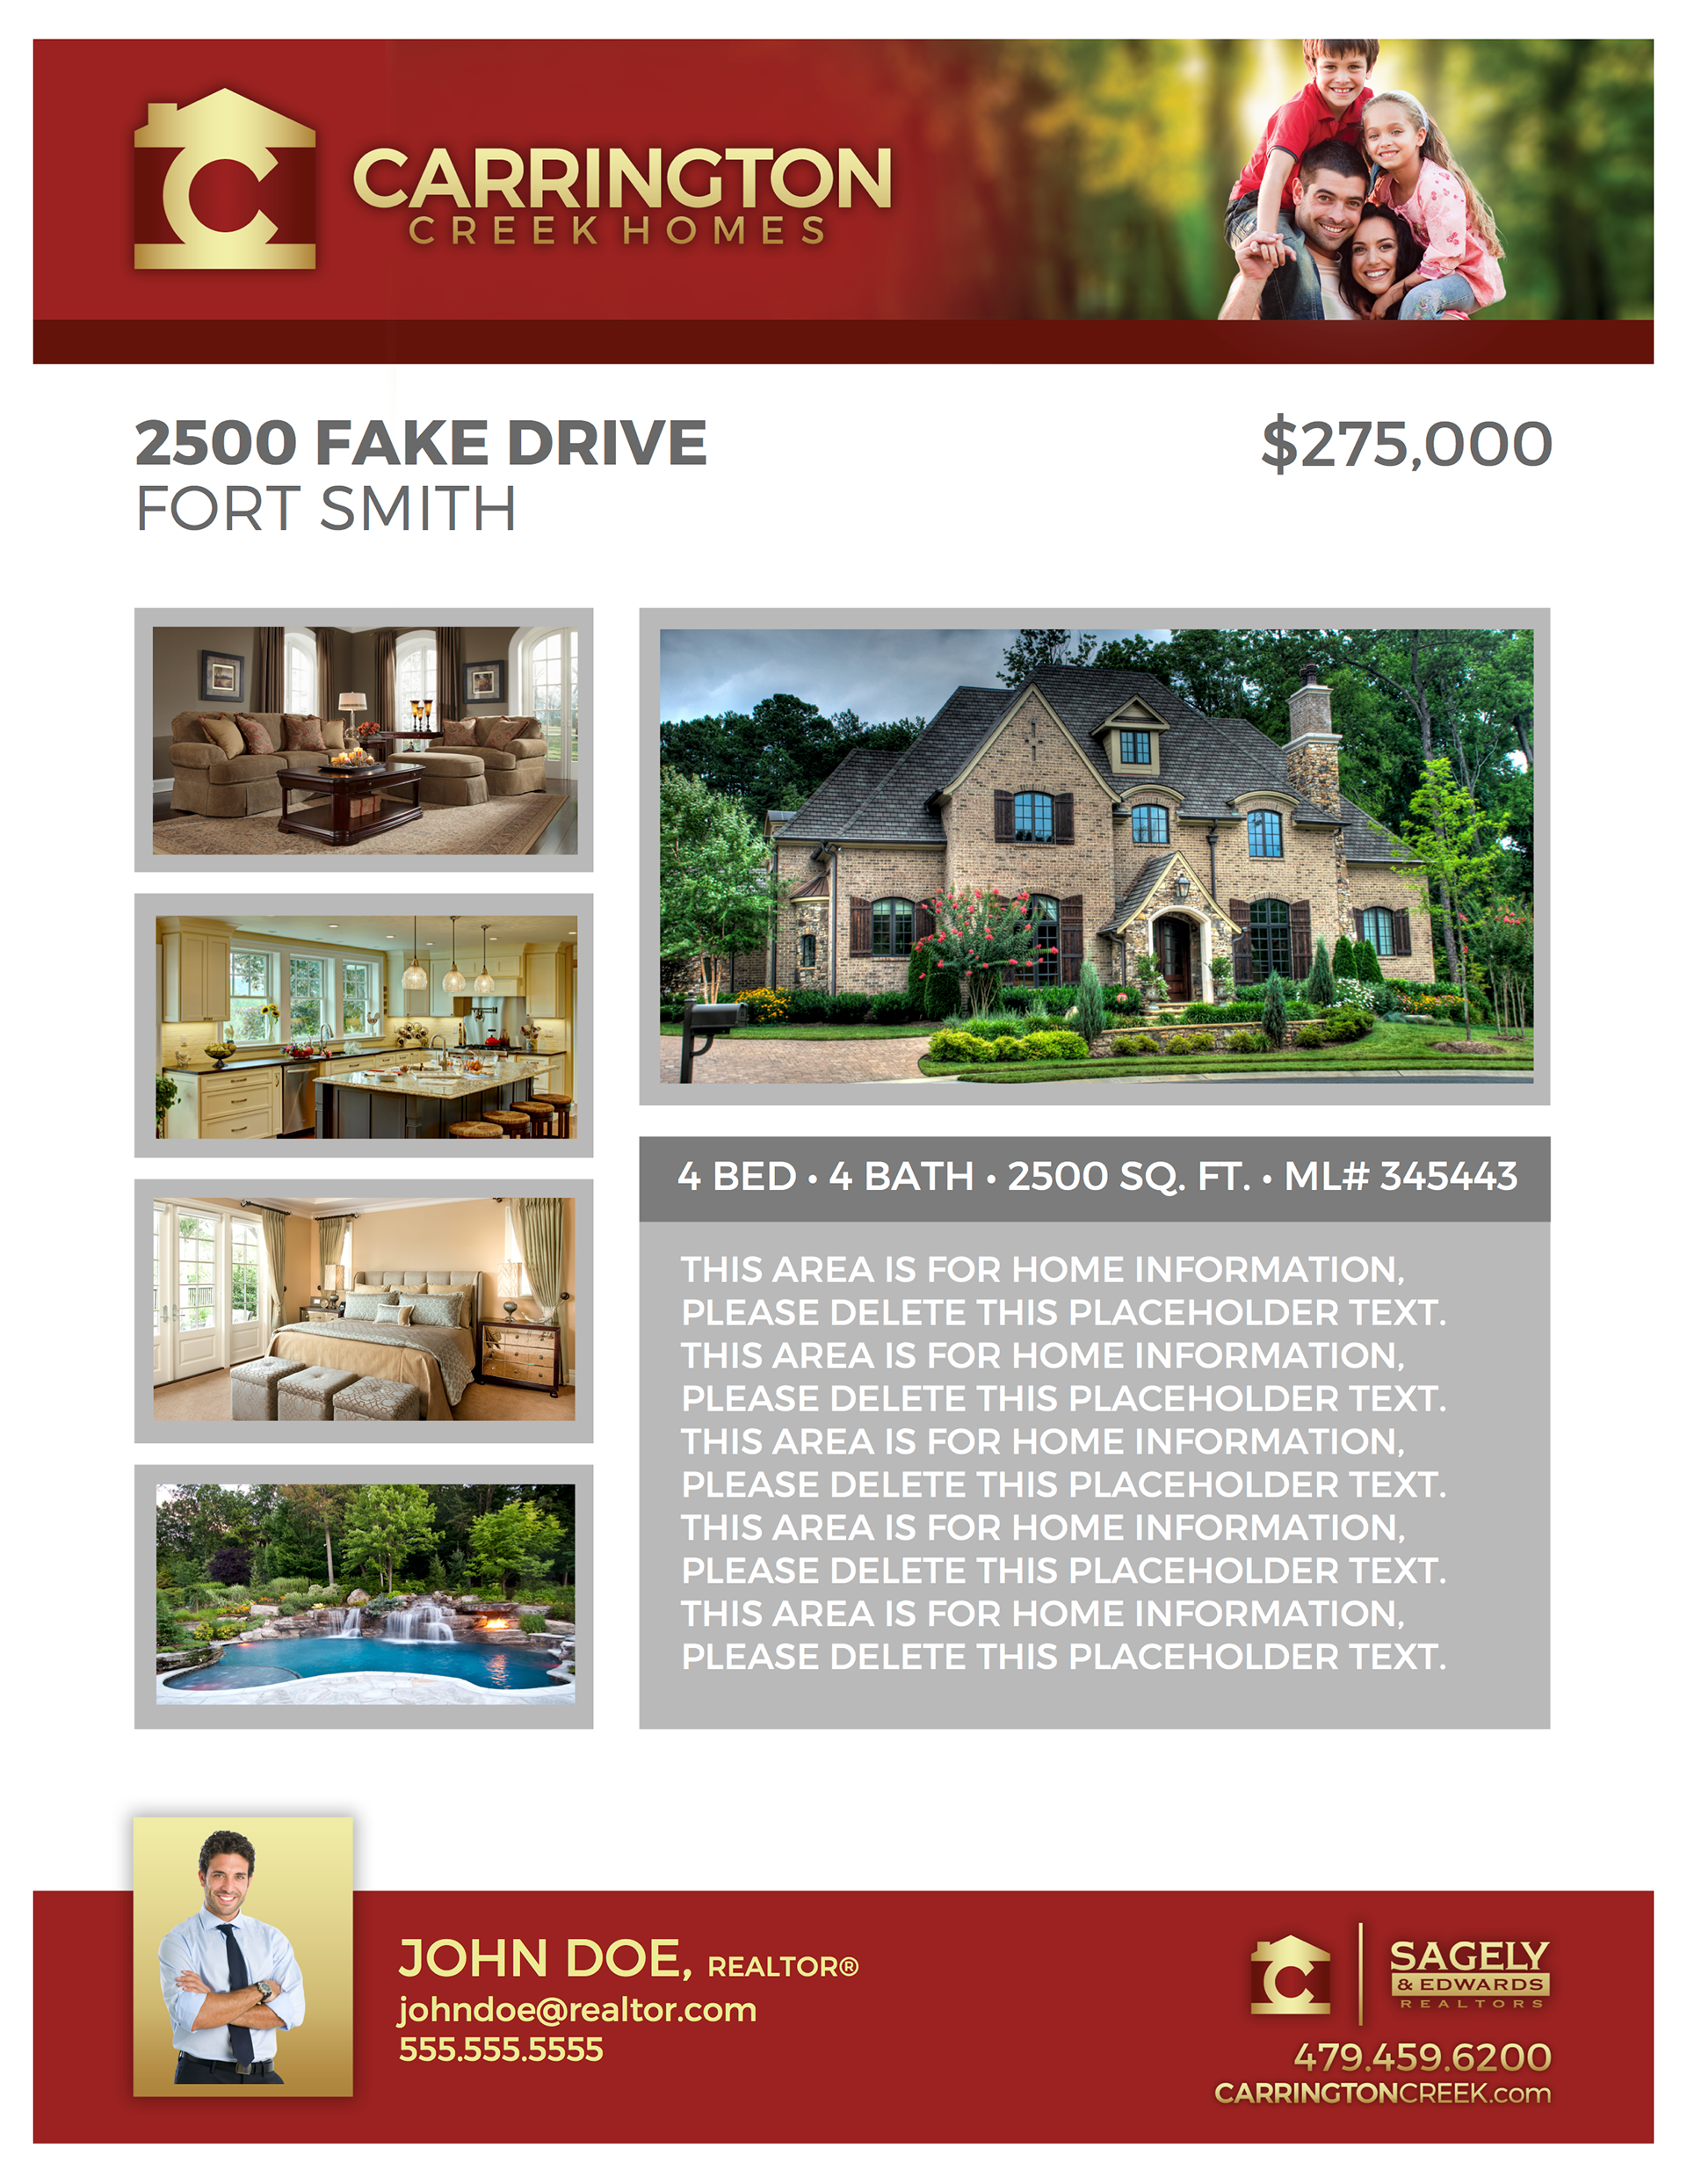 Chase Smallwood - Carrington Creek Homes, Home Flyer Design on interior design flyer, logo design flyer, web design flyer, fiesta flyer, architecture flyer, landscaping flyer, photography flyer, graphic design flyer,